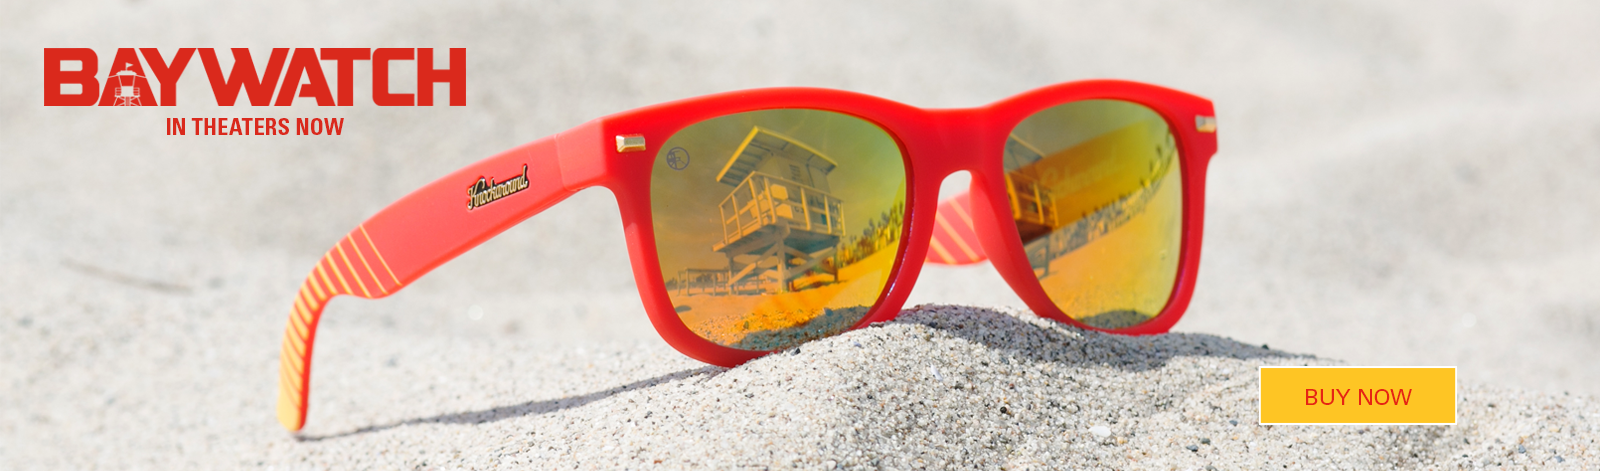 baywatch-product-header-fort-knocks_2000x2000